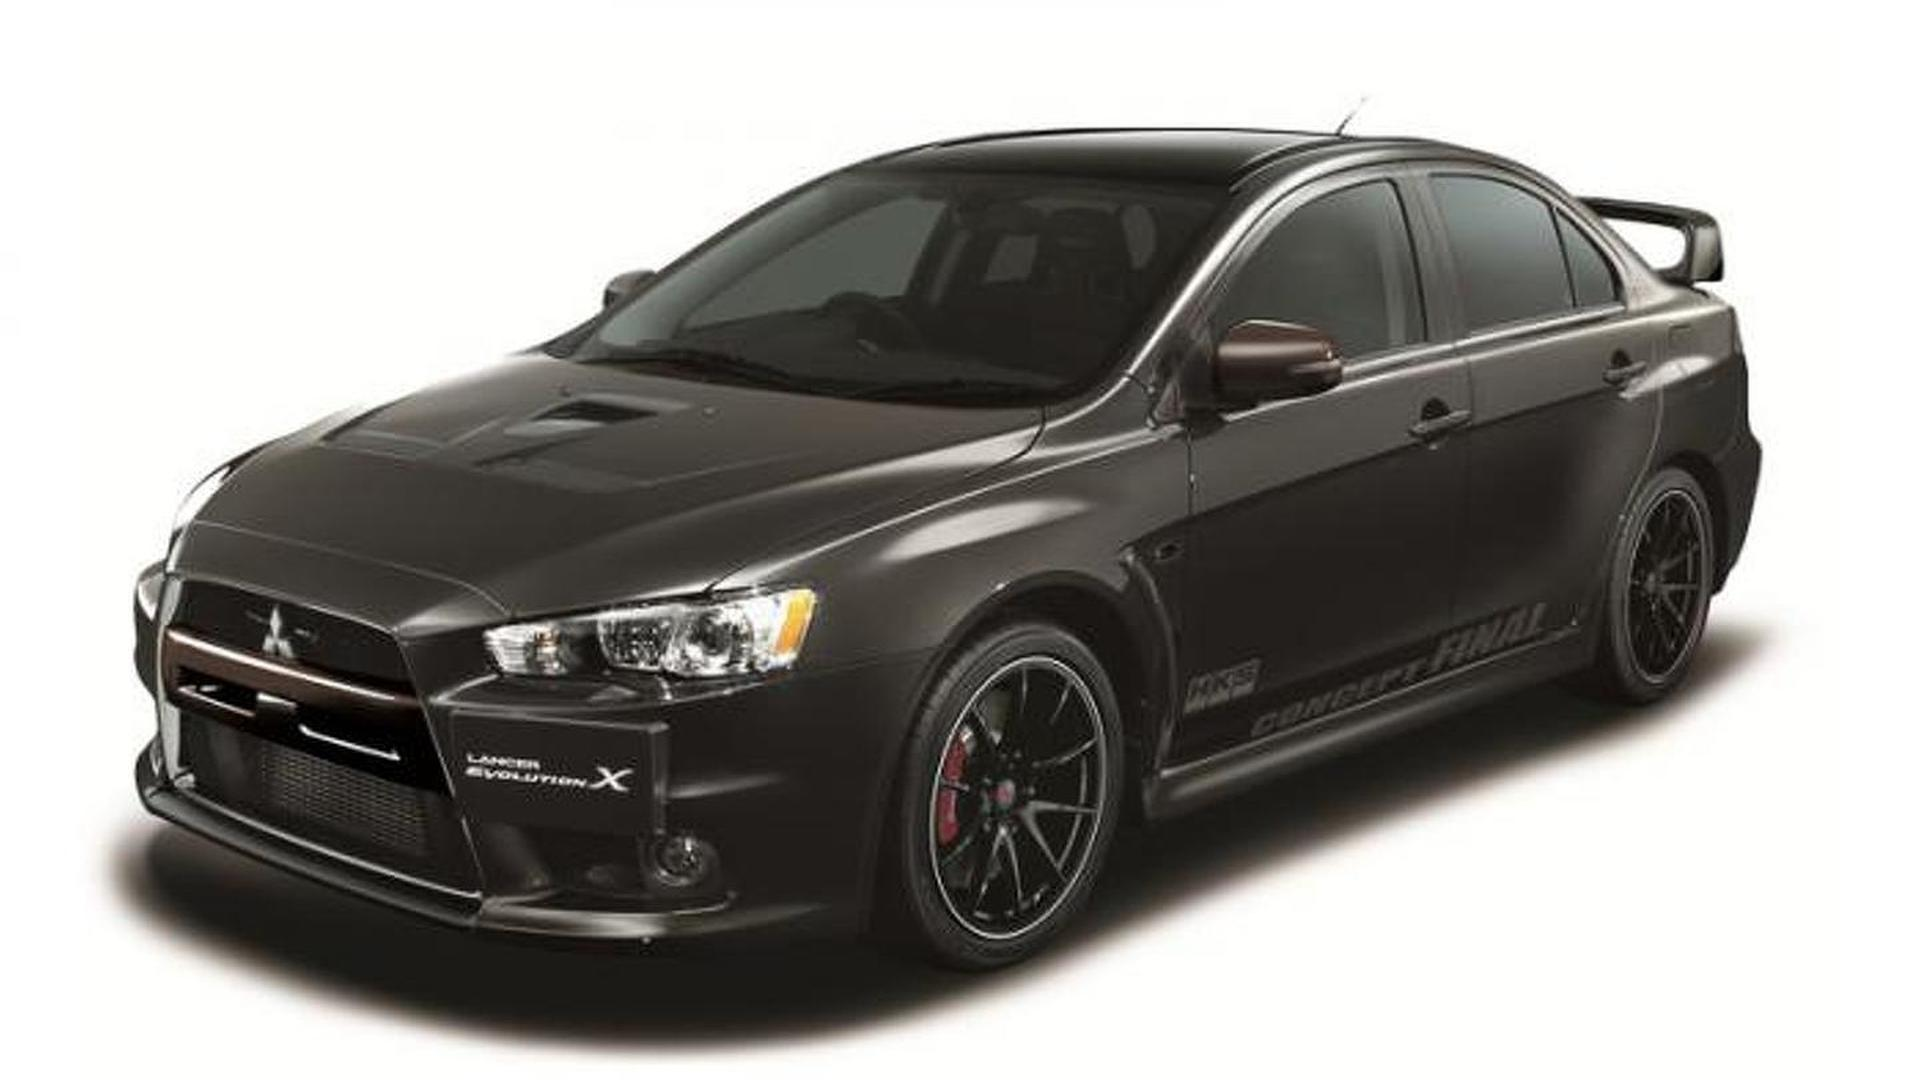 vents product charge index hood carbon addiction php lancer evo mitsubishi speed x style cf evolution